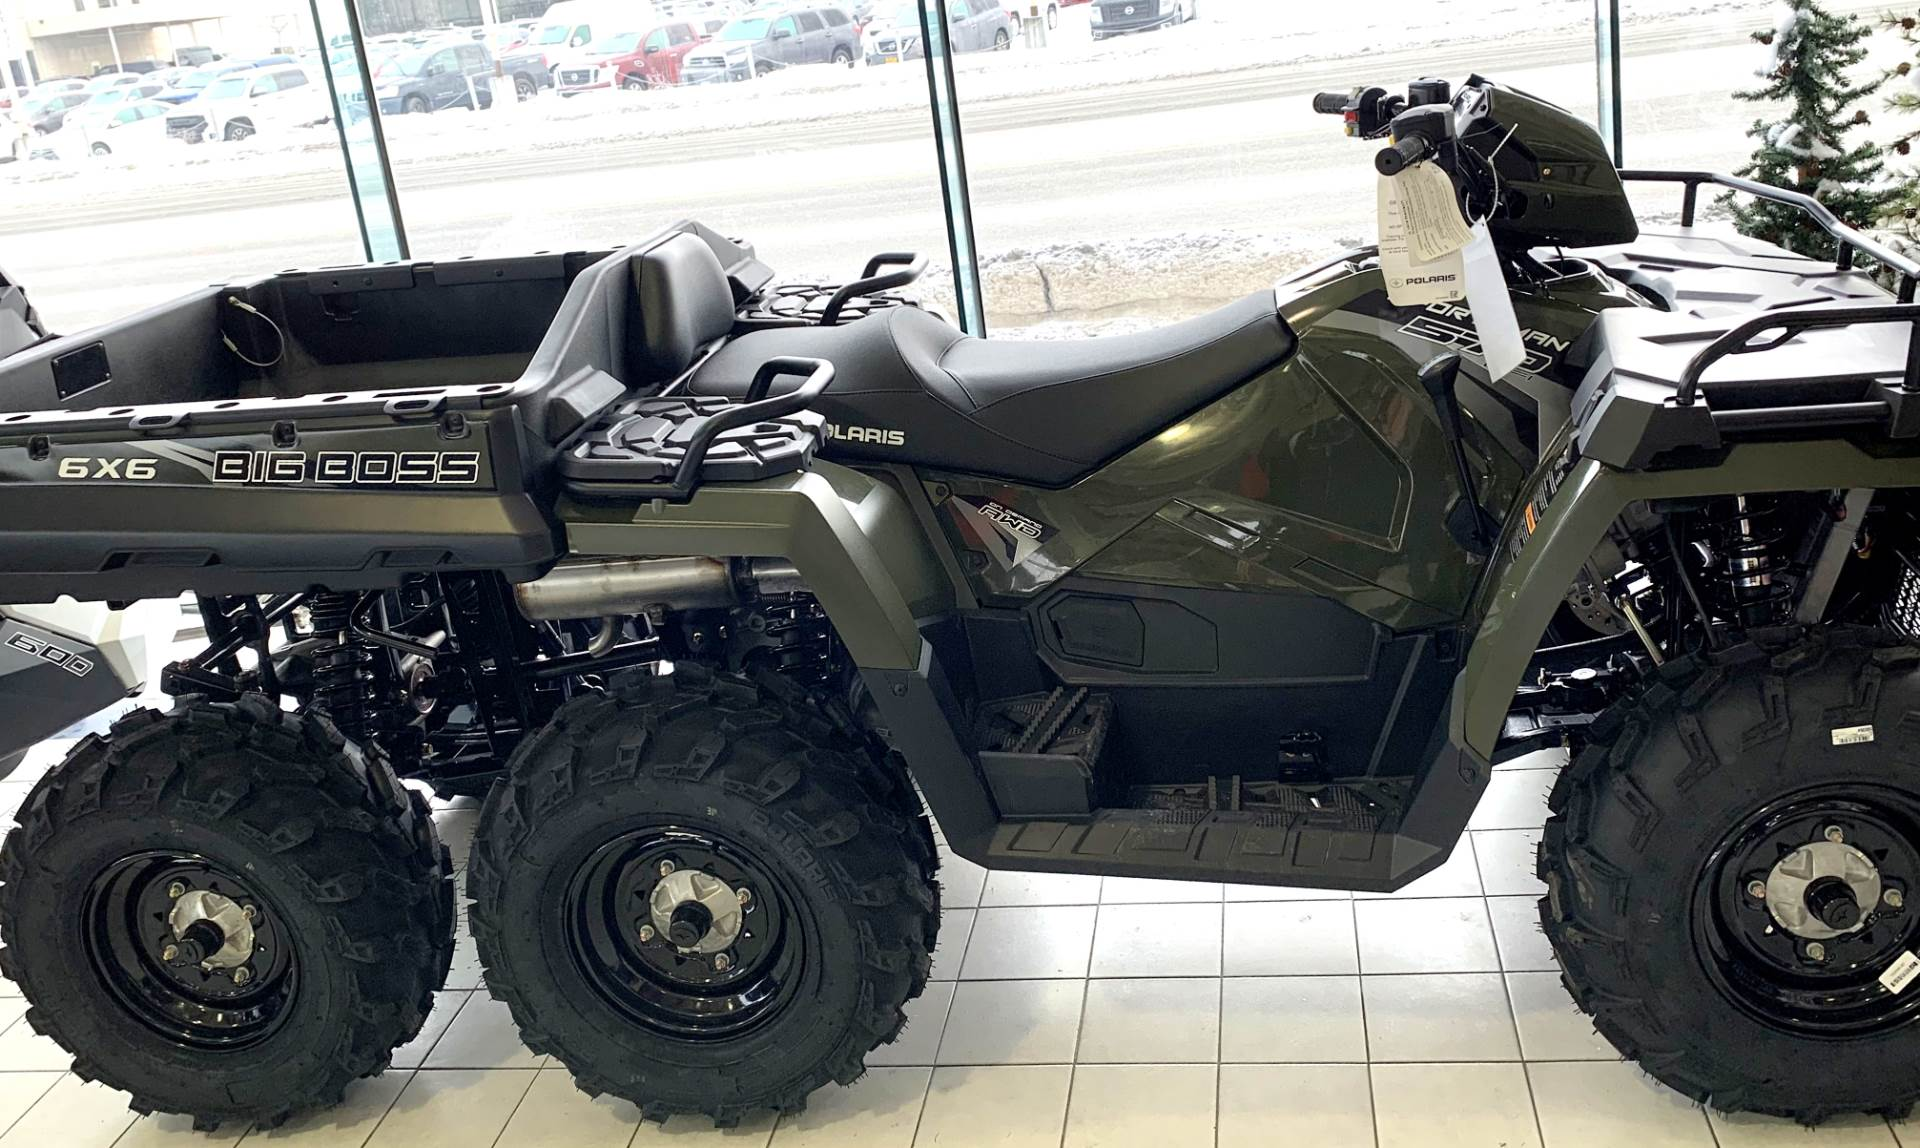 2019 Polaris Sportsman 6x6 570 in Anchorage, Alaska - Photo 2